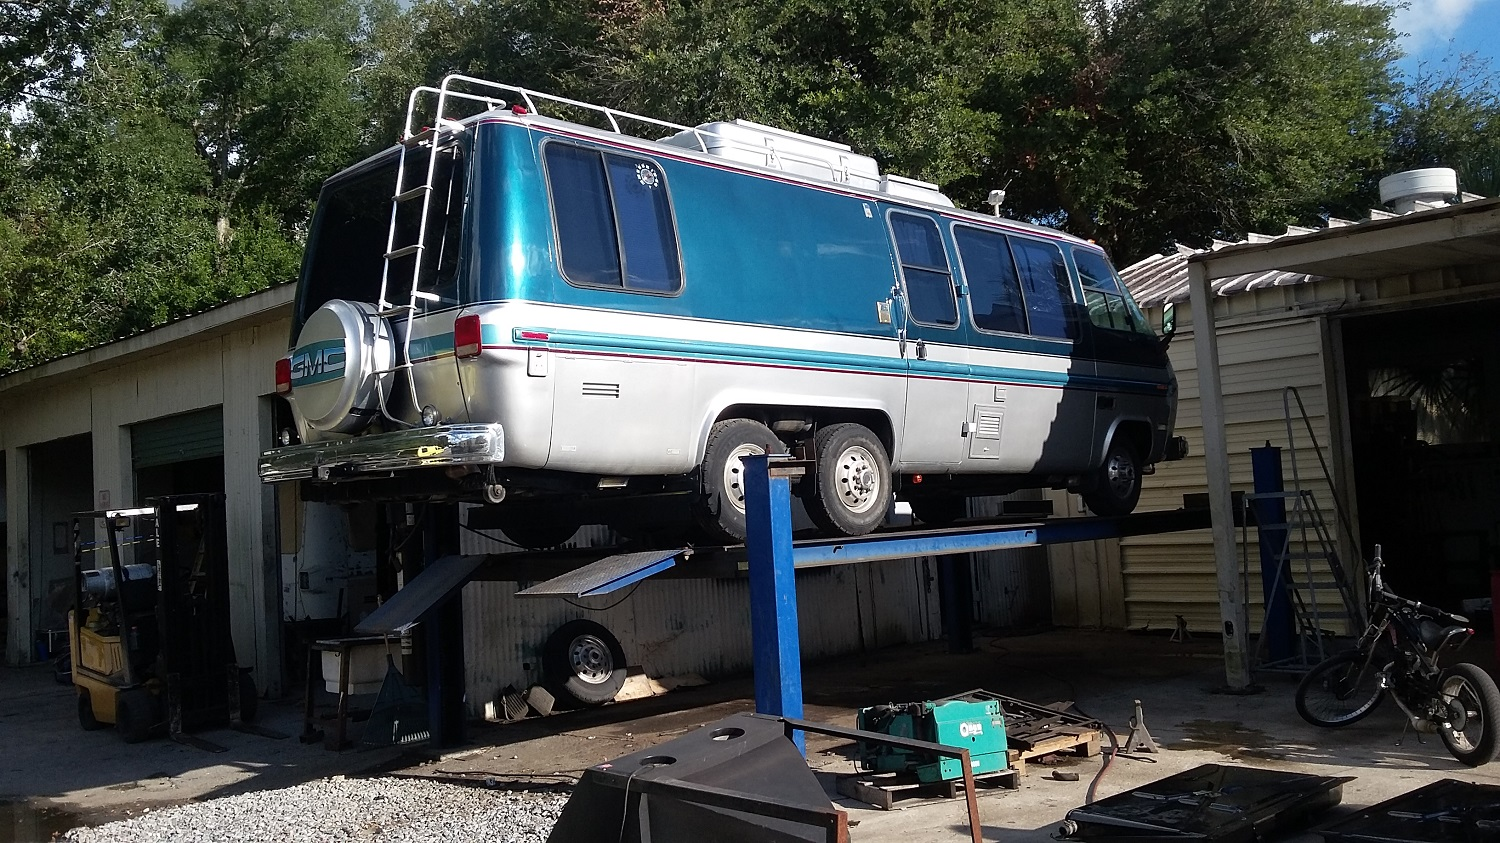 GMC Motorhome, ABS holding tanks - Cooperative Motor Works